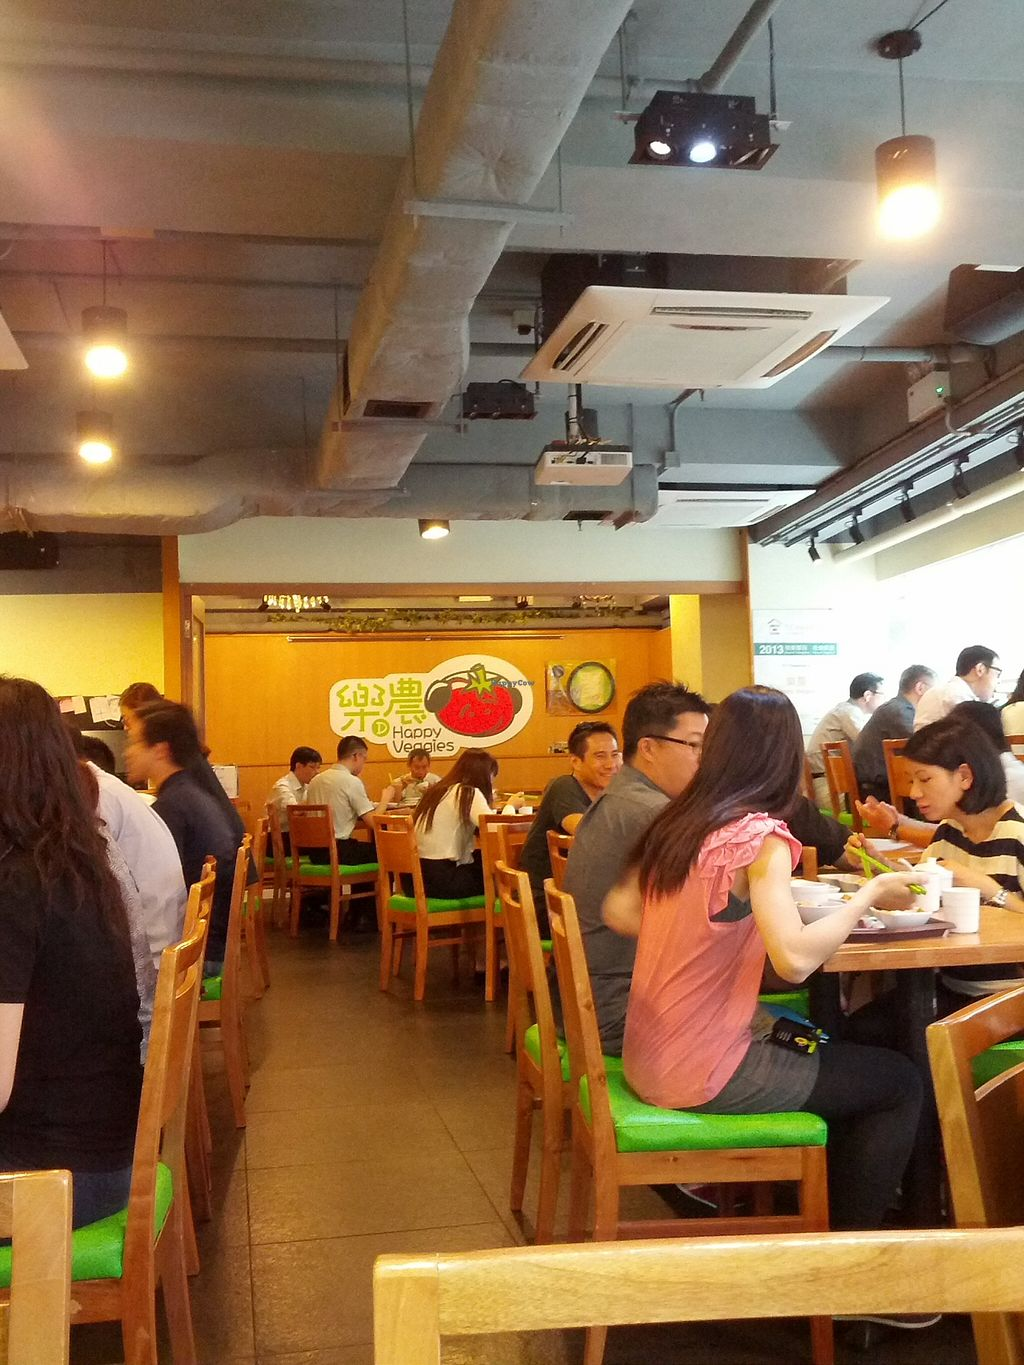 """Photo of Happy Veggies - Wanchai  by <a href=""""/members/profile/JW"""">JW</a> <br/>Interior <br/> October 10, 2015  - <a href='/contact/abuse/image/25649/120928'>Report</a>"""